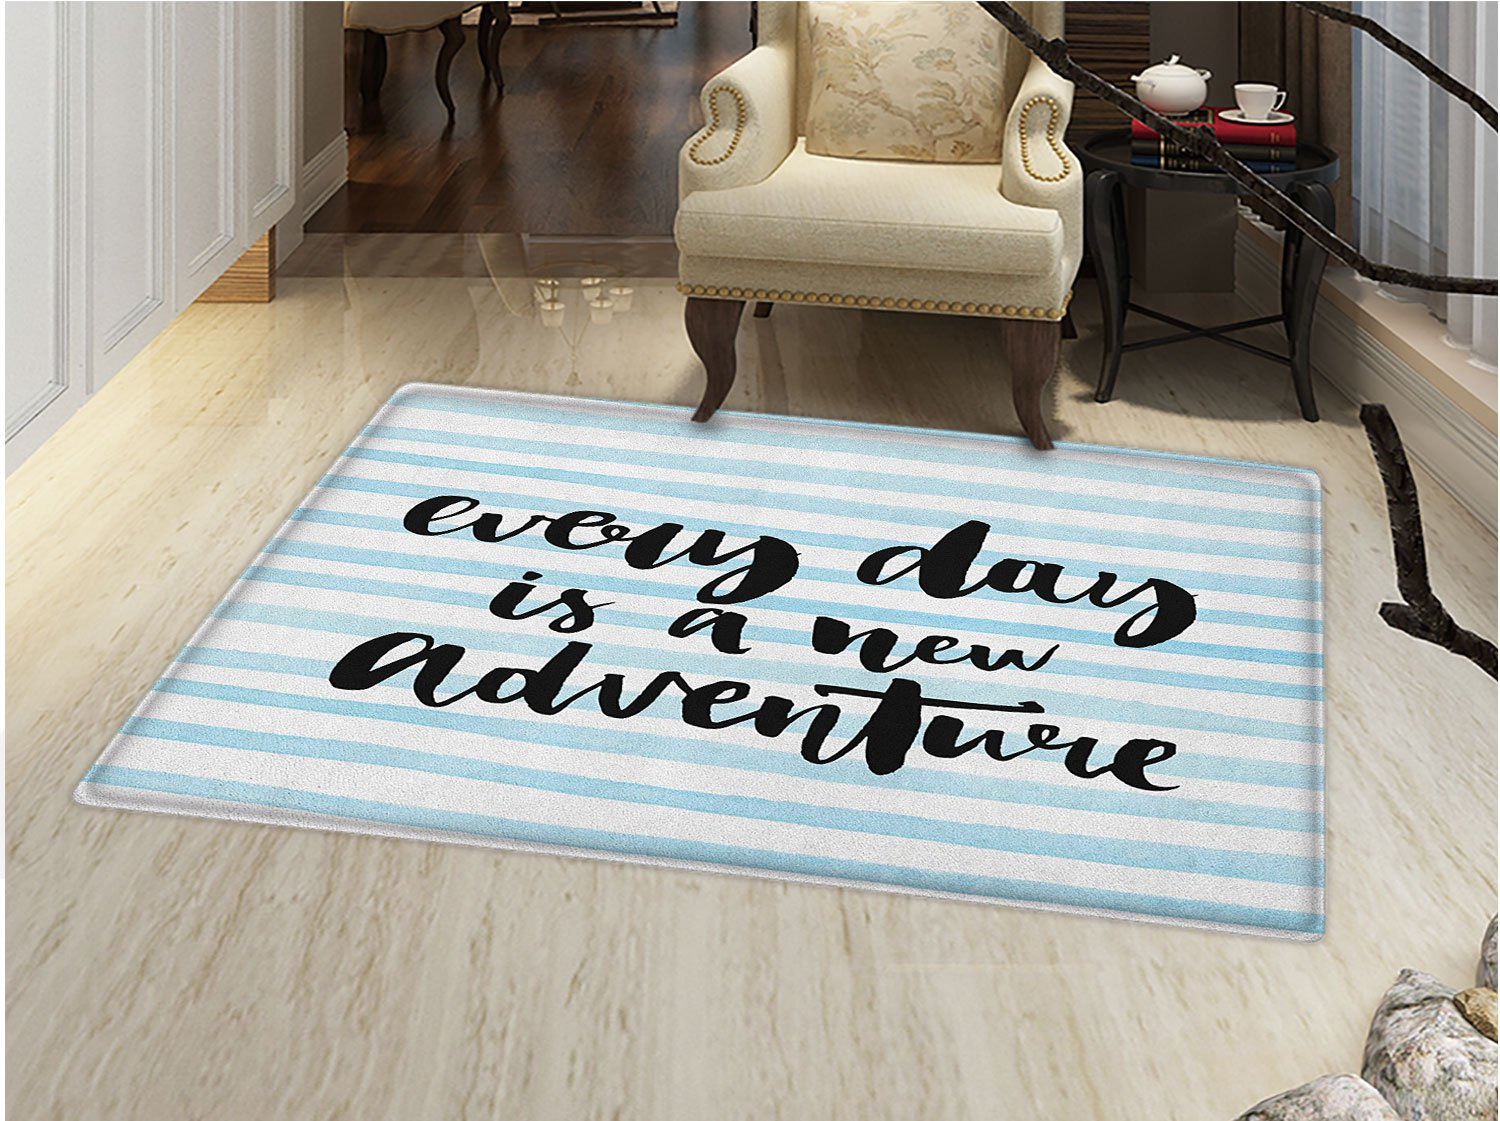 Adventure Bath Mats for floors Every Day is a New Adventure Quote Inspirational Things About Life Artwork Door Mat indoors Bathroom Mats Non Slip Baby Blue Black by smallbeefly